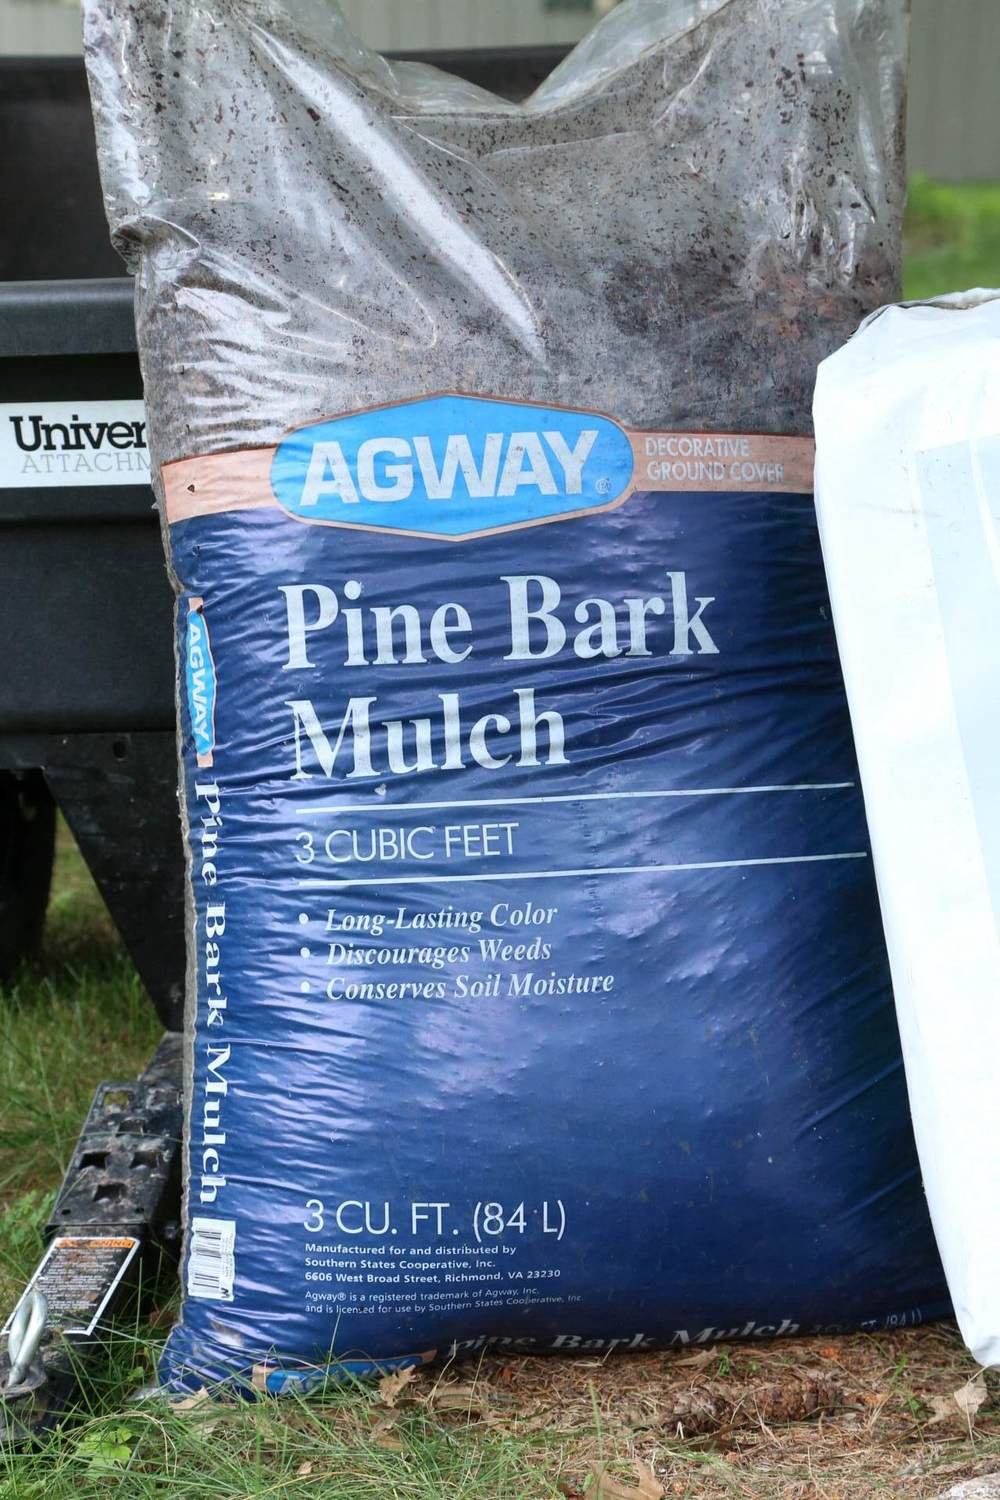 Pine bark fines (called Pine Bark Mulch by Agway)